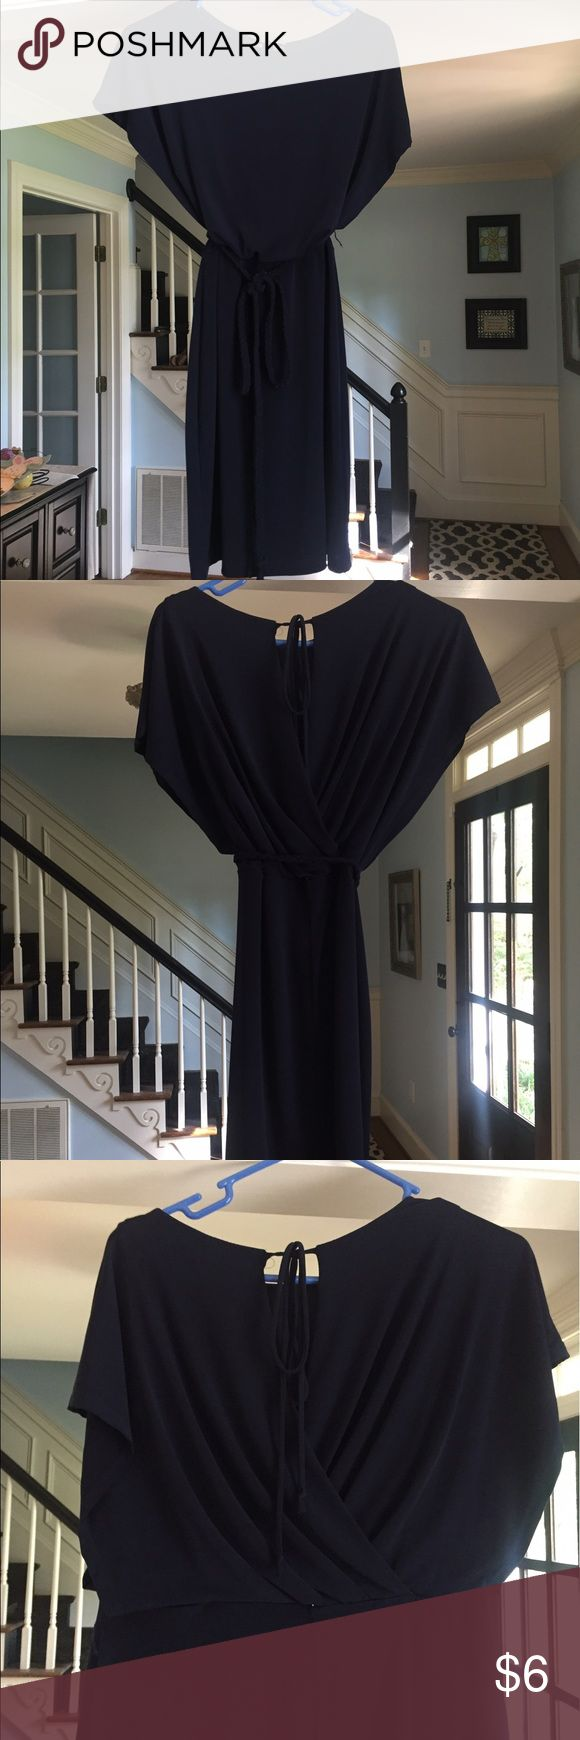 Navy short dress Cute Navy dress. Short with cute tie in back. Braided belt around waste-line. There are little loops (thread) for belt however they are broken. Not needed for wearing braided belt. enfocus Dresses Mini